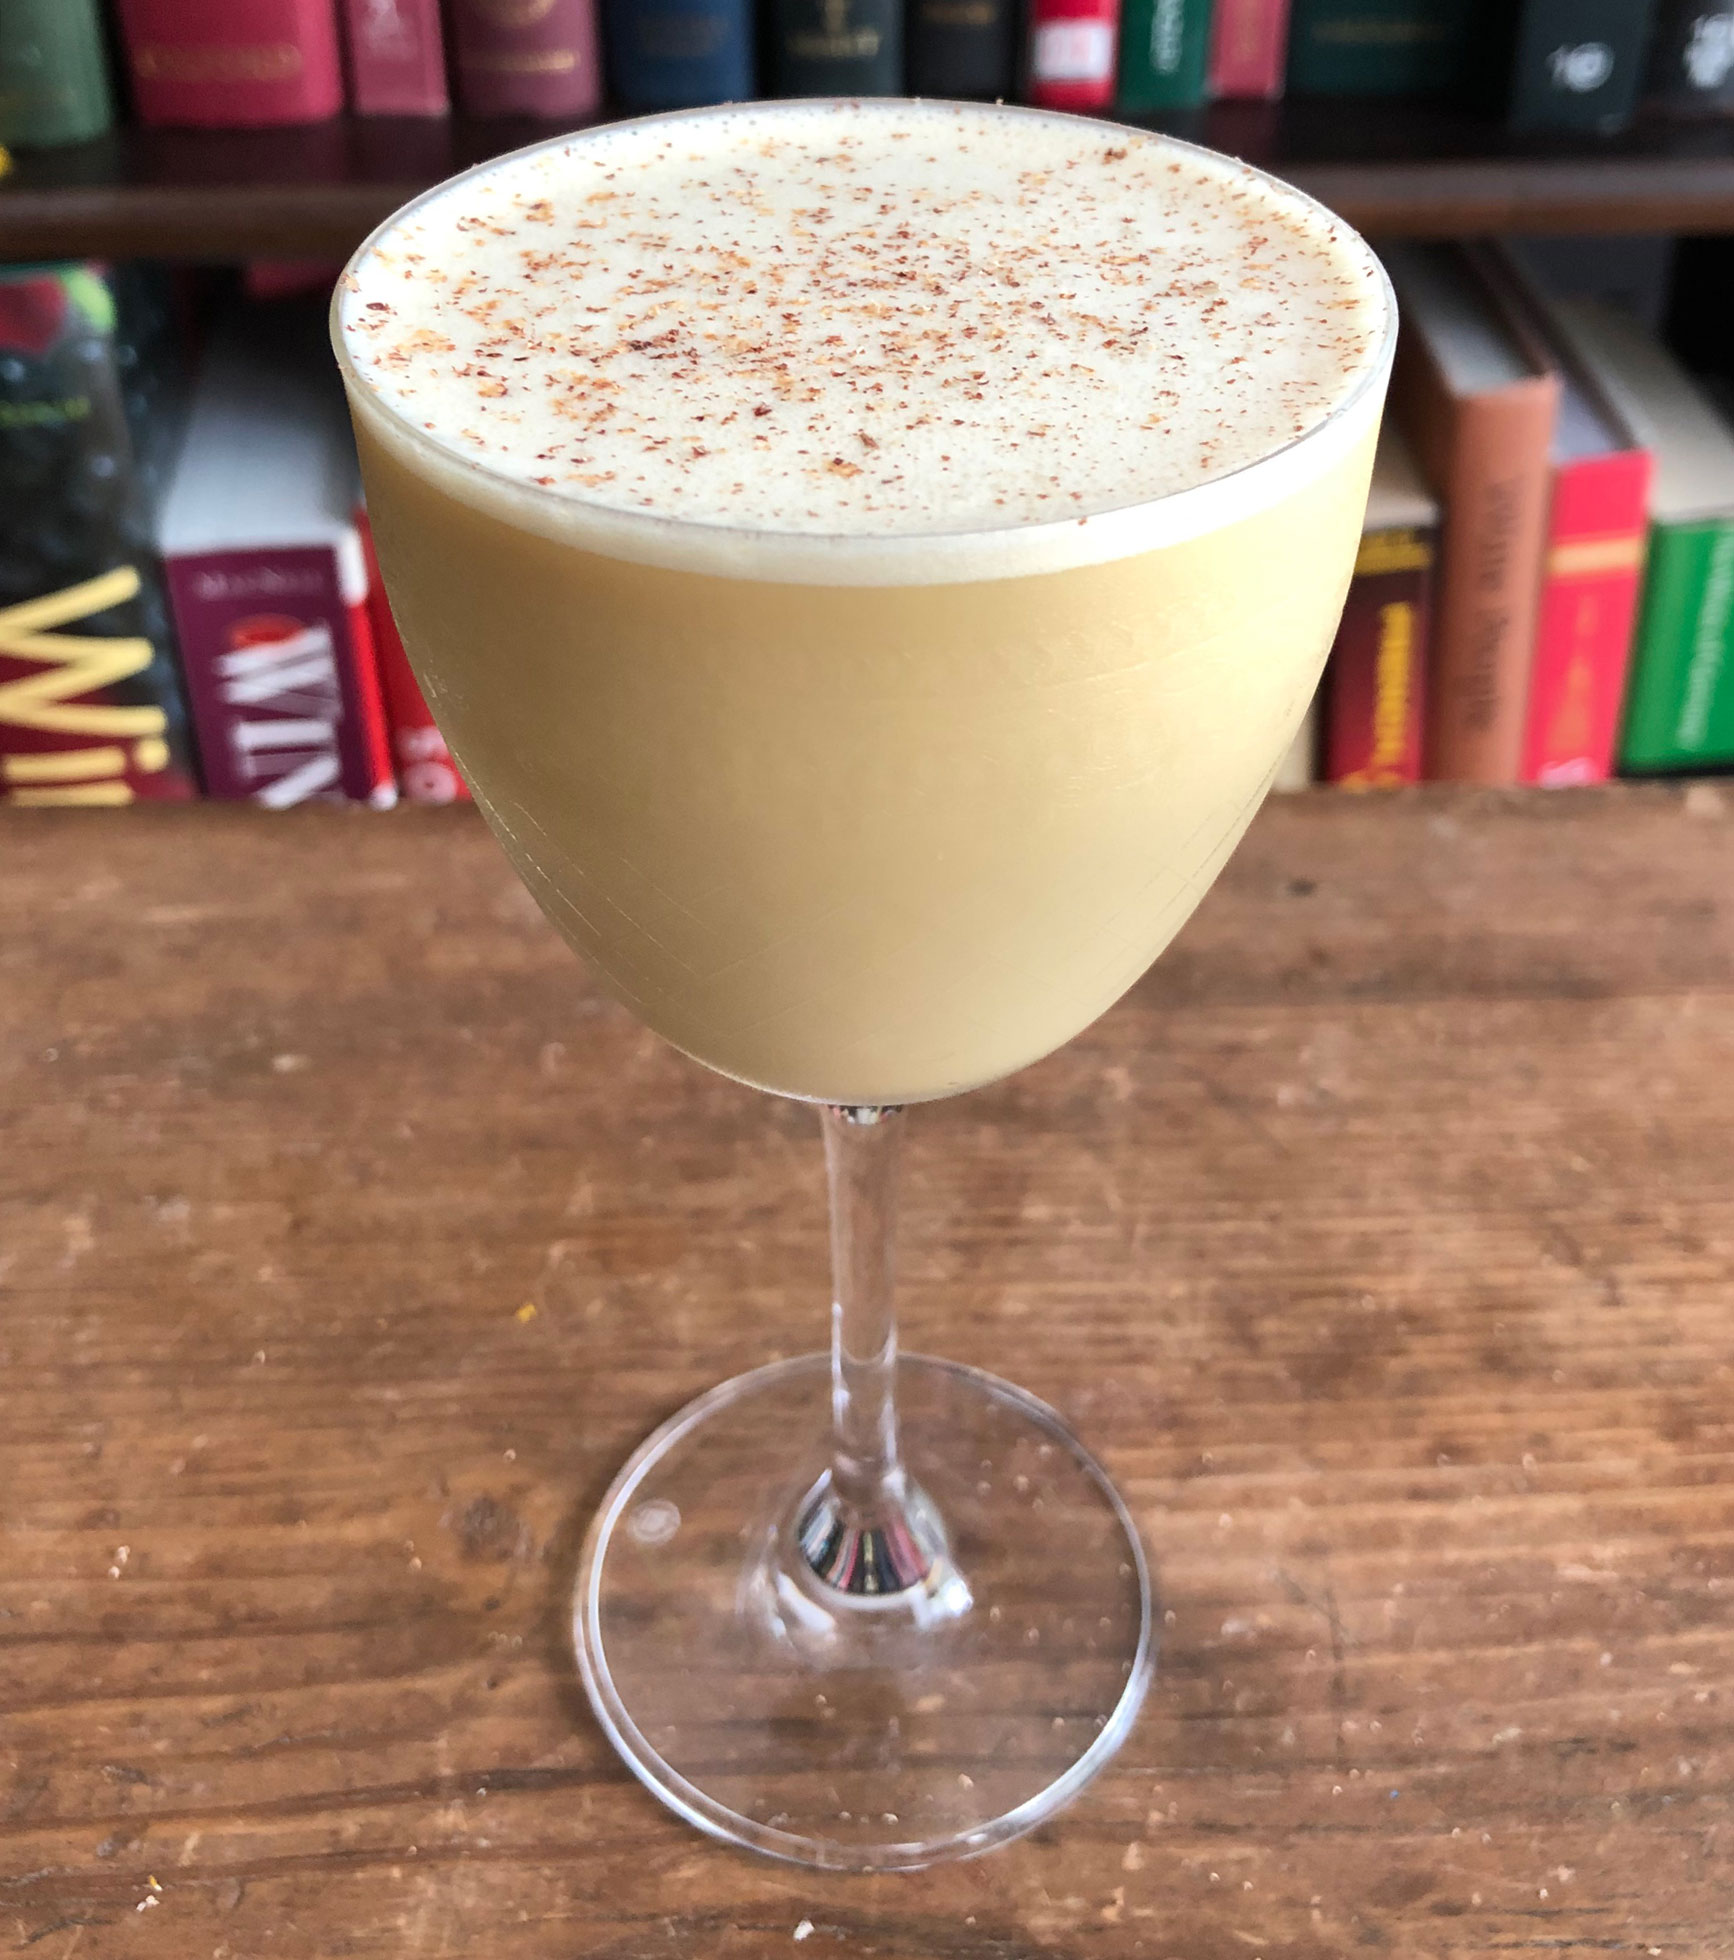 An example of the Flip It and Reverse It, the mixed drink (flip) featuring Saveiro 'Vento do Oeste' Madeira, raw egg, half & half, and maple syrup; photo by Lee Edwards